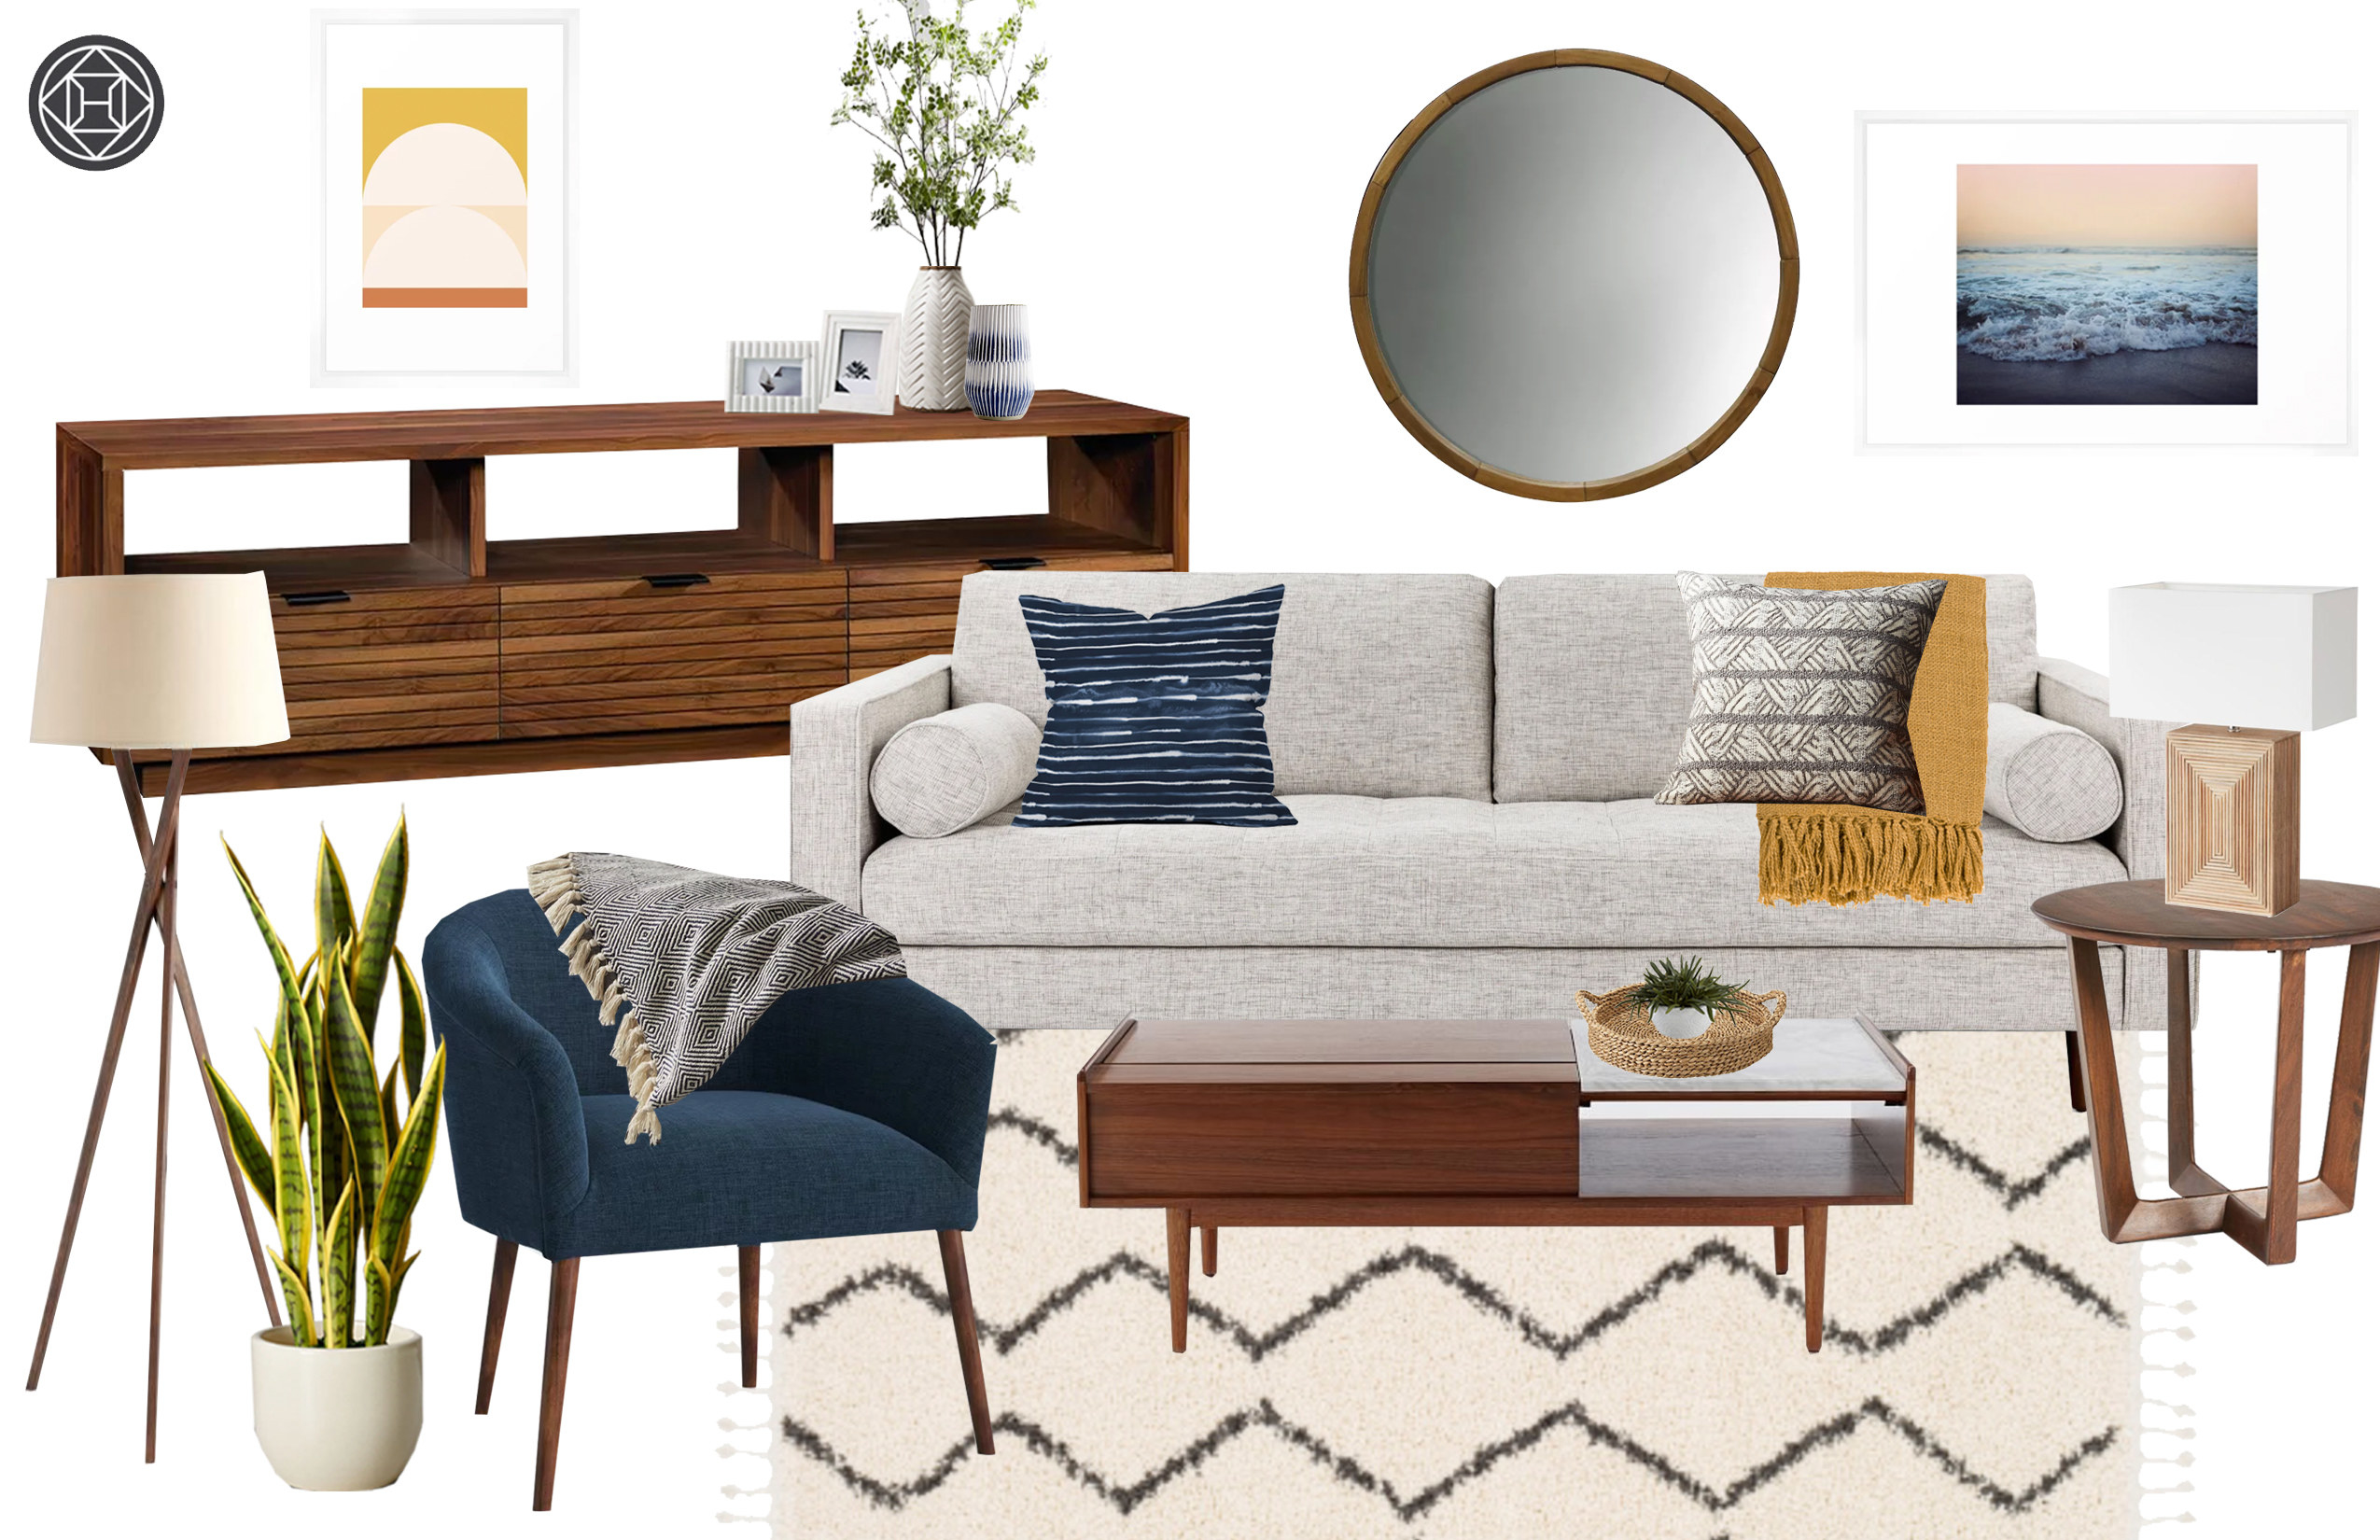 A concept board featuring a compilation of possible furniture items for the living room. Includes a wooden circular wall mirror, artwork, wood lamps, a stylish wood coffee table, a blue armchair, a cream-colored carpet, and a light gray couch.